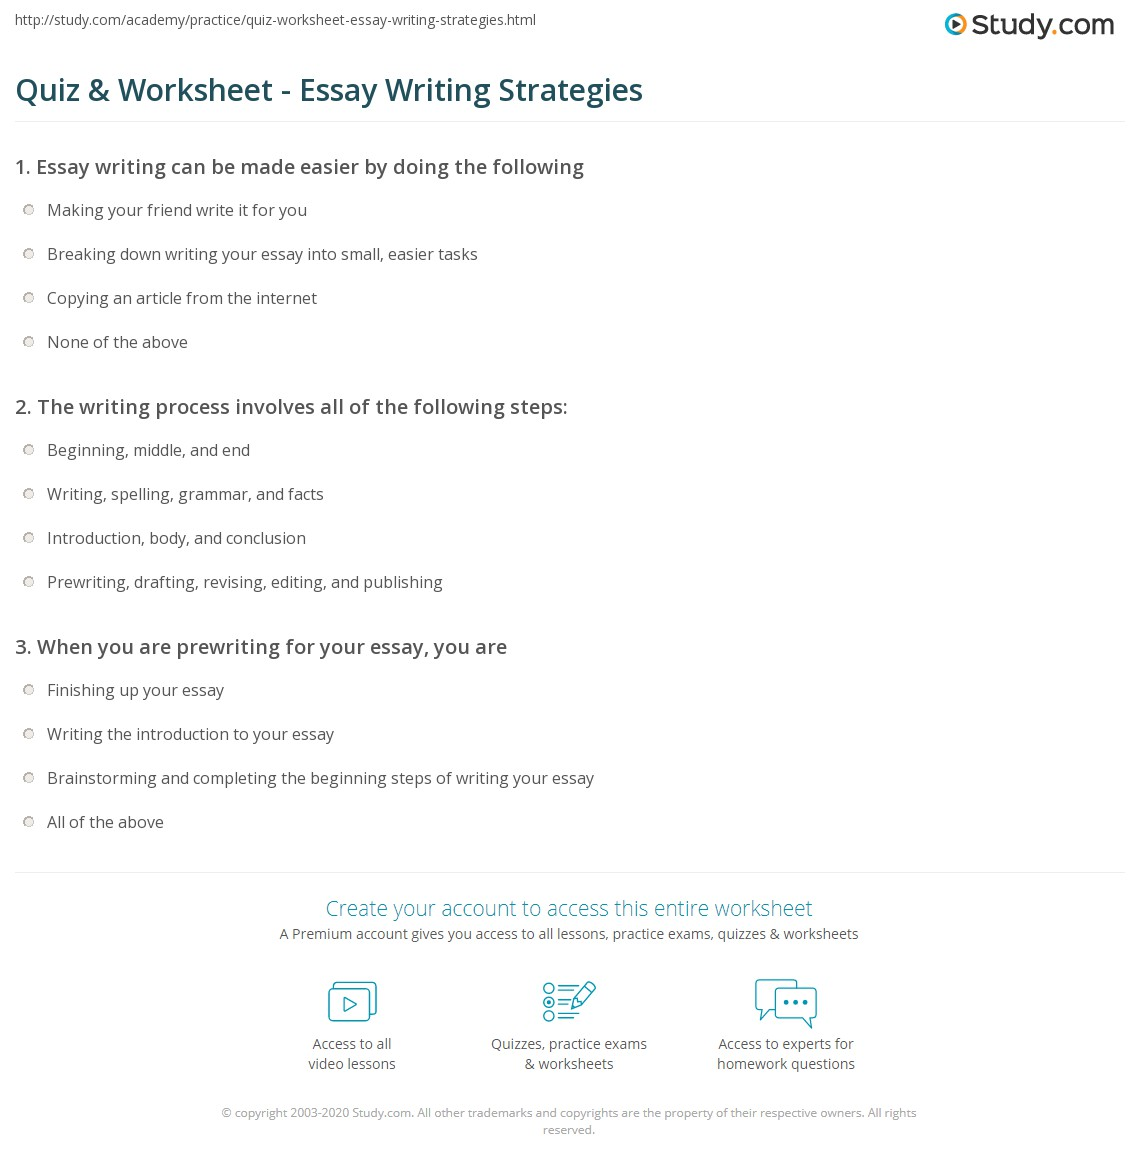 Help for essay writing quiz questions